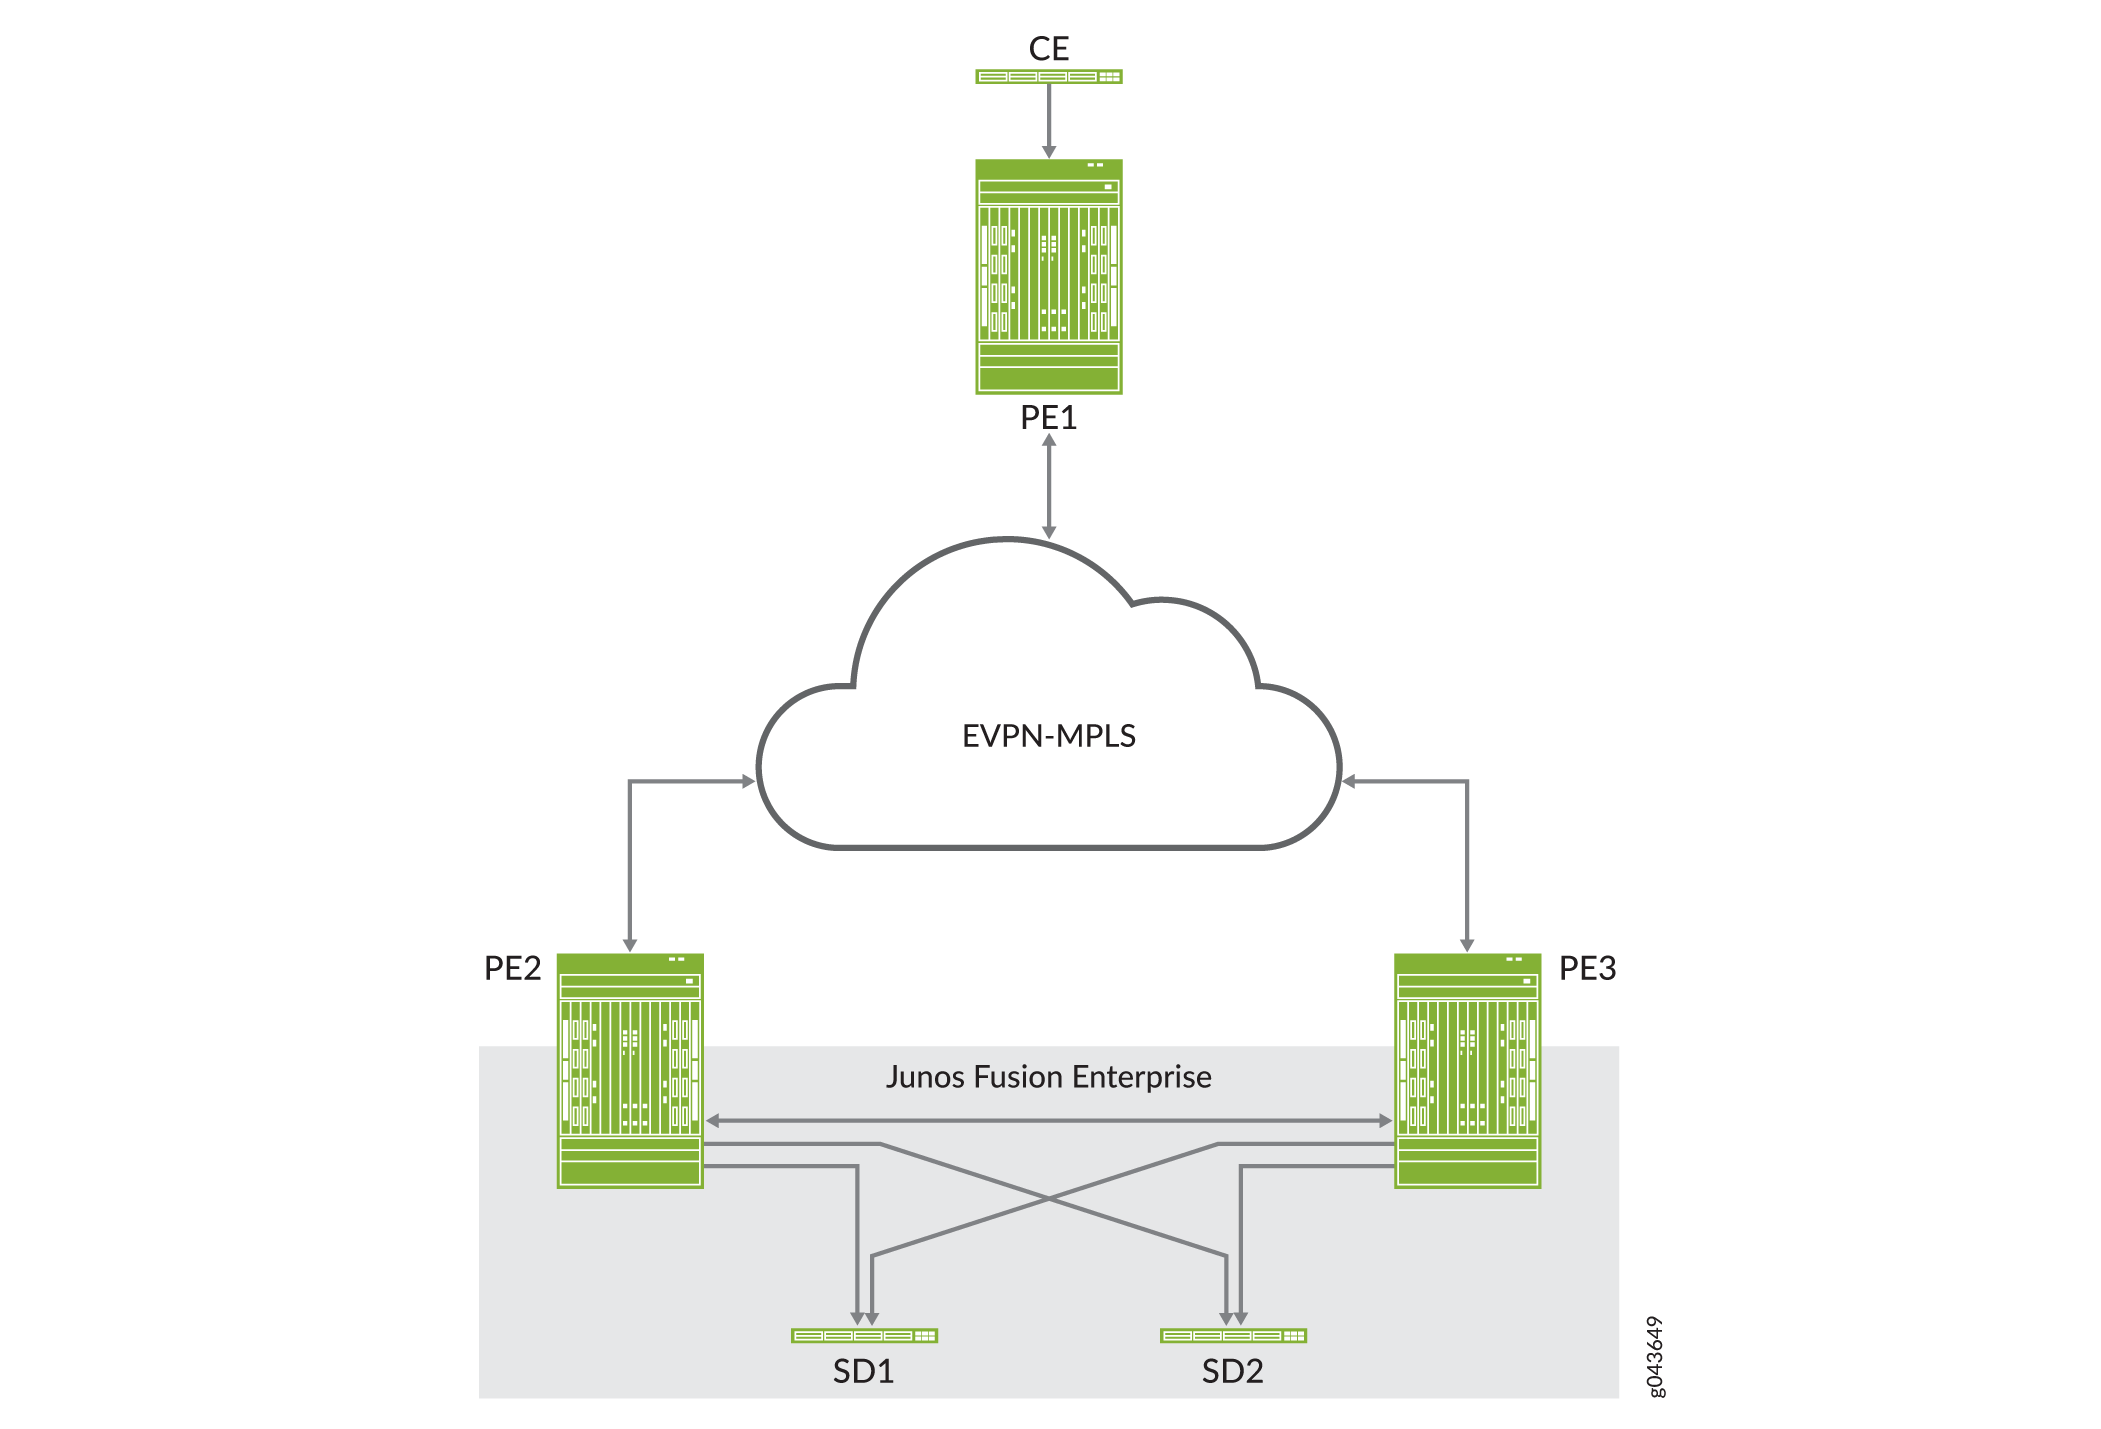 Extending an MC-LAG Topology Using EVPN-MPLS - TechLibrary - Juniper